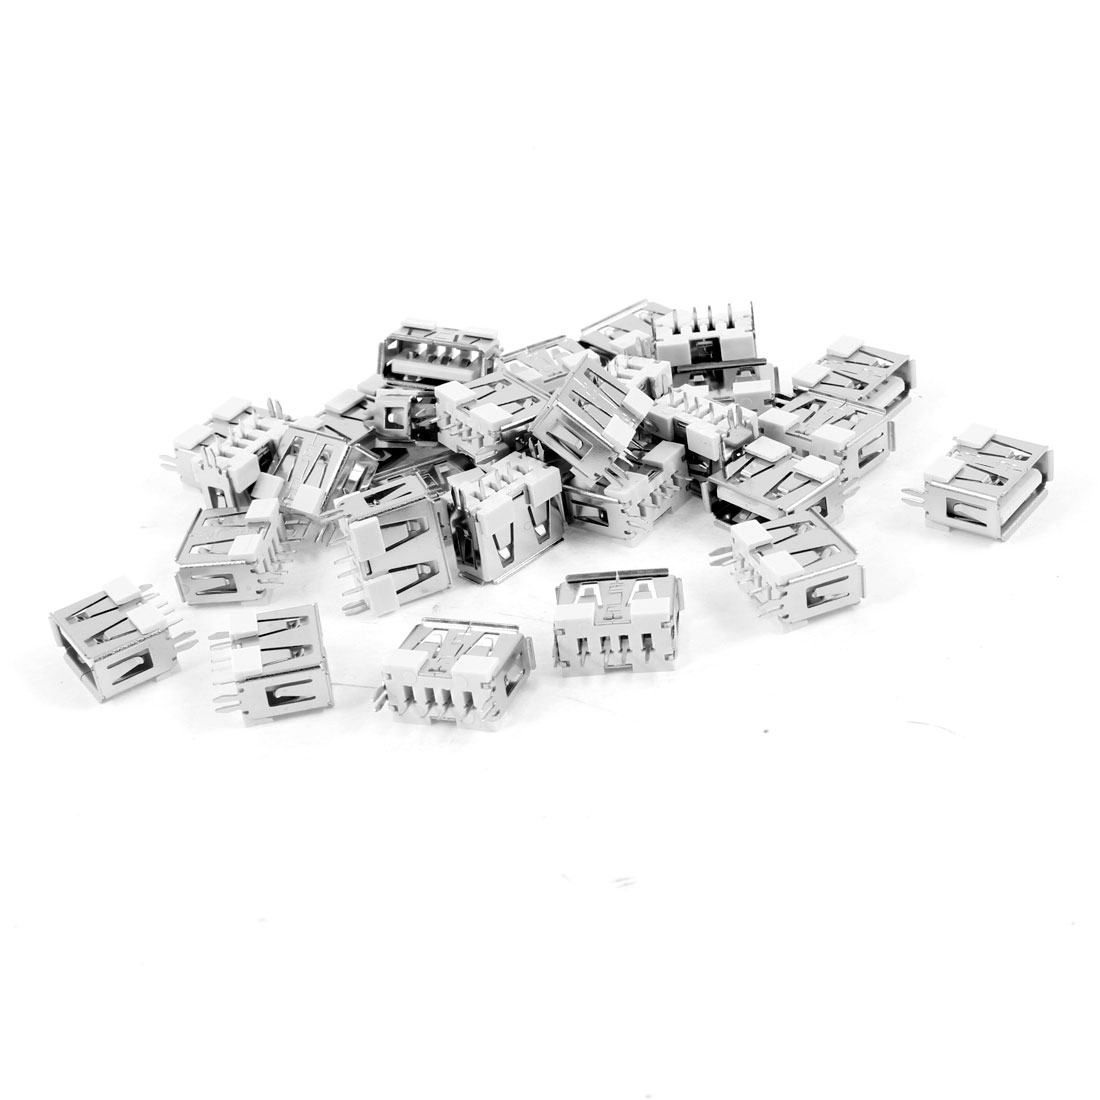 30 Pcs Single USB 2.0 Type A 180 Degree 4-Pin DIP Female Jack Socket